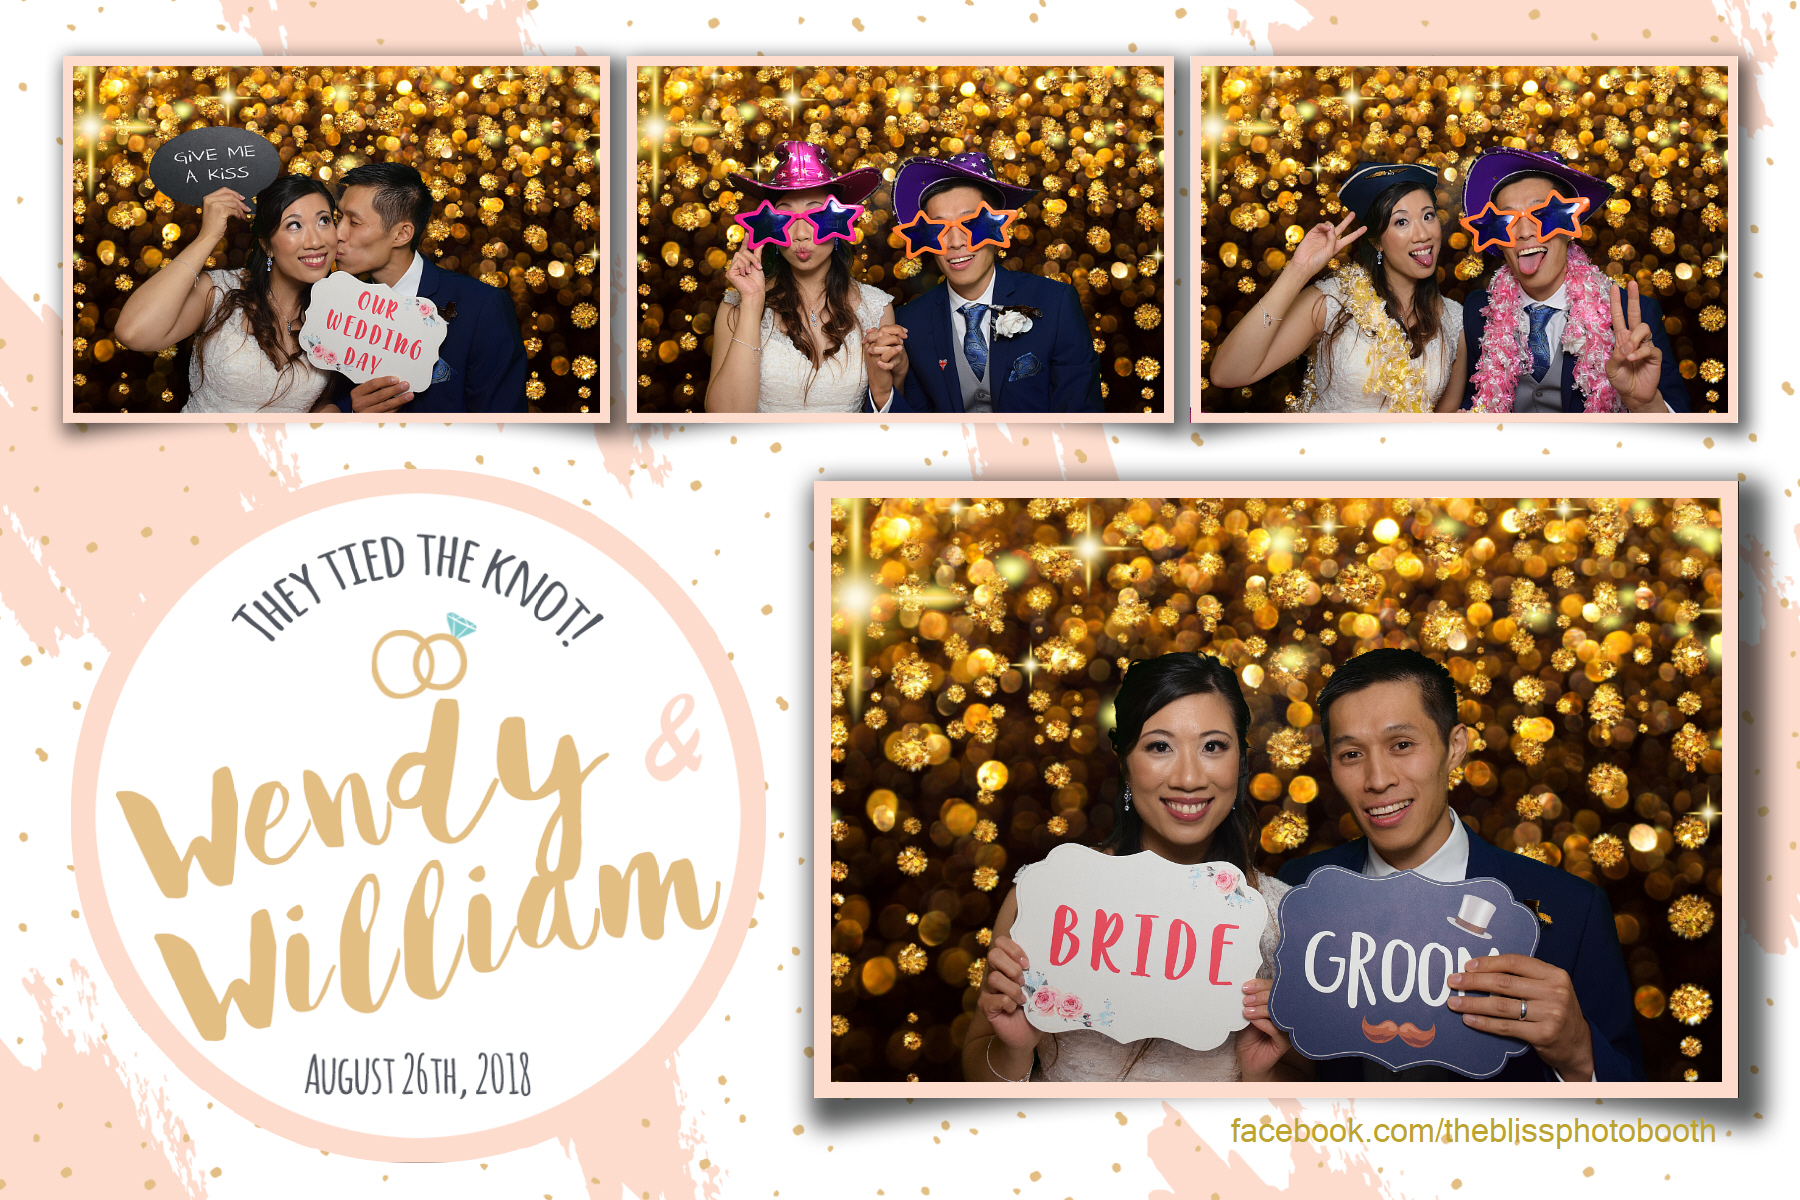 Wendy and William - Kenwood Hall Sheffield - Photo Booth